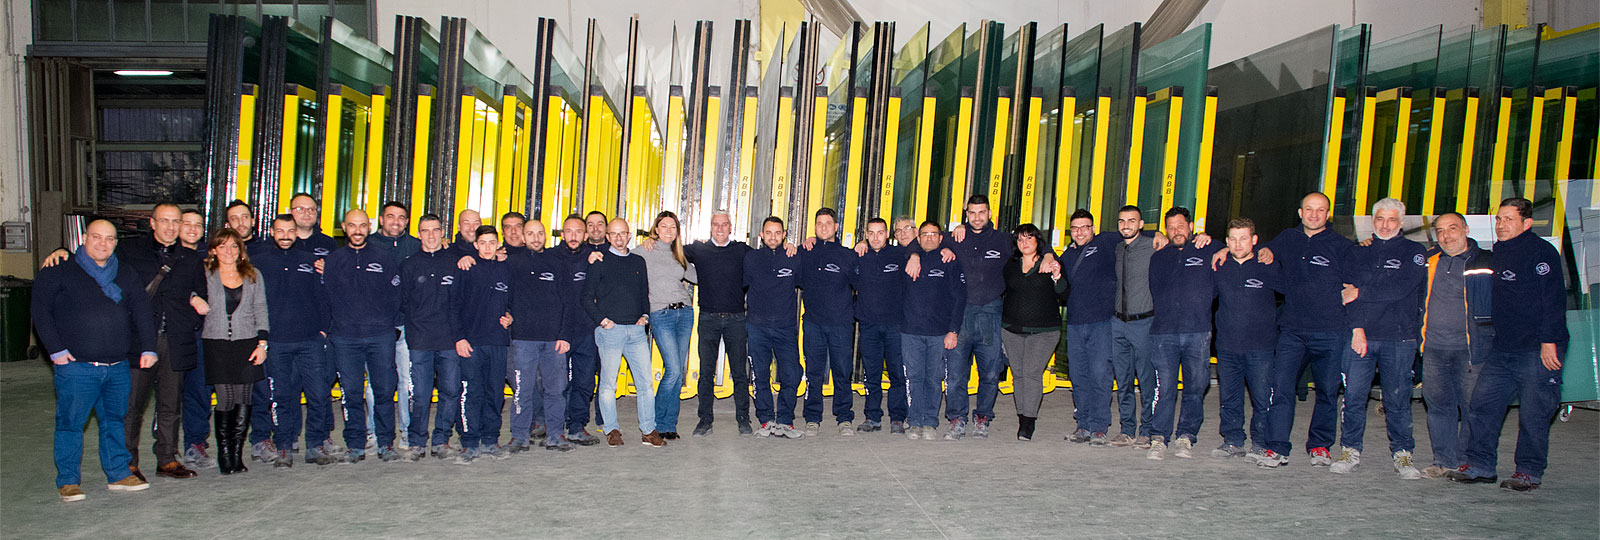 Palumbo Glass Team